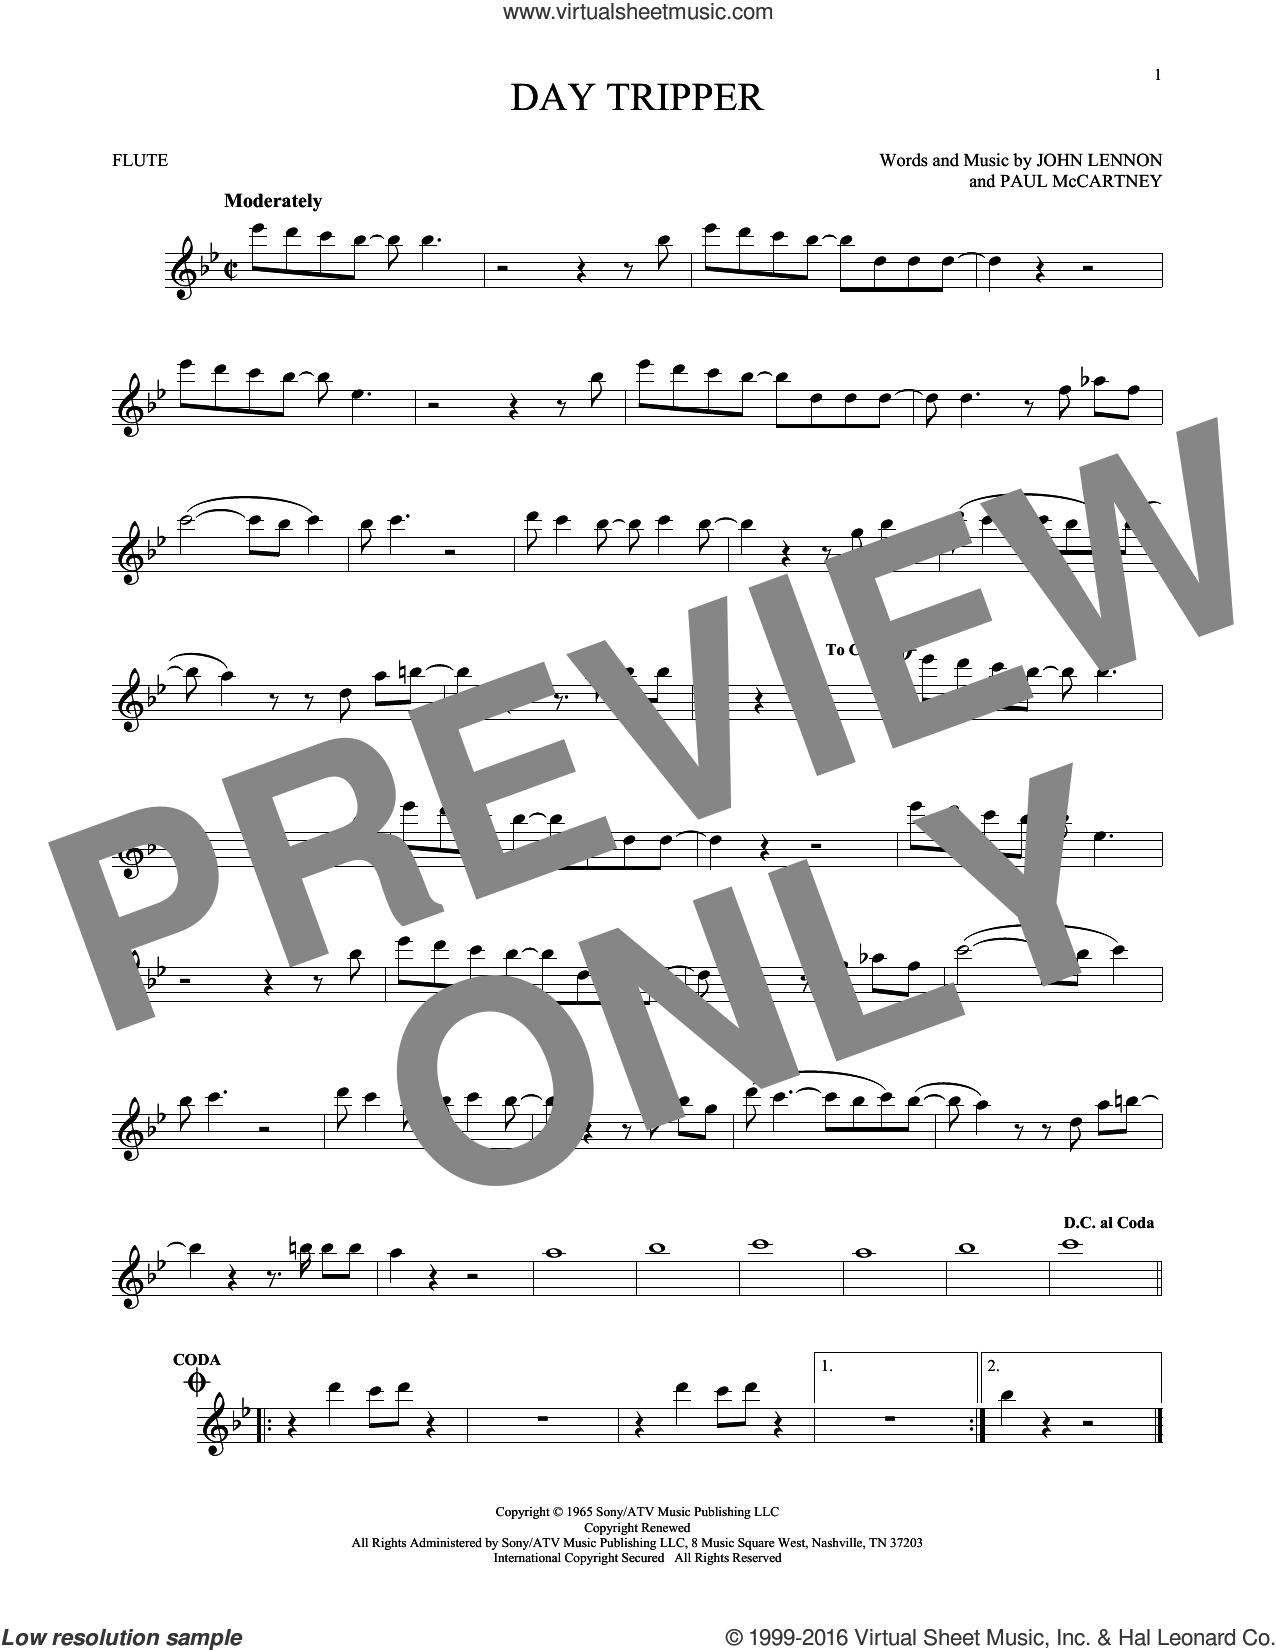 Day Tripper sheet music for flute solo by The Beatles, John Lennon and Paul McCartney, intermediate skill level